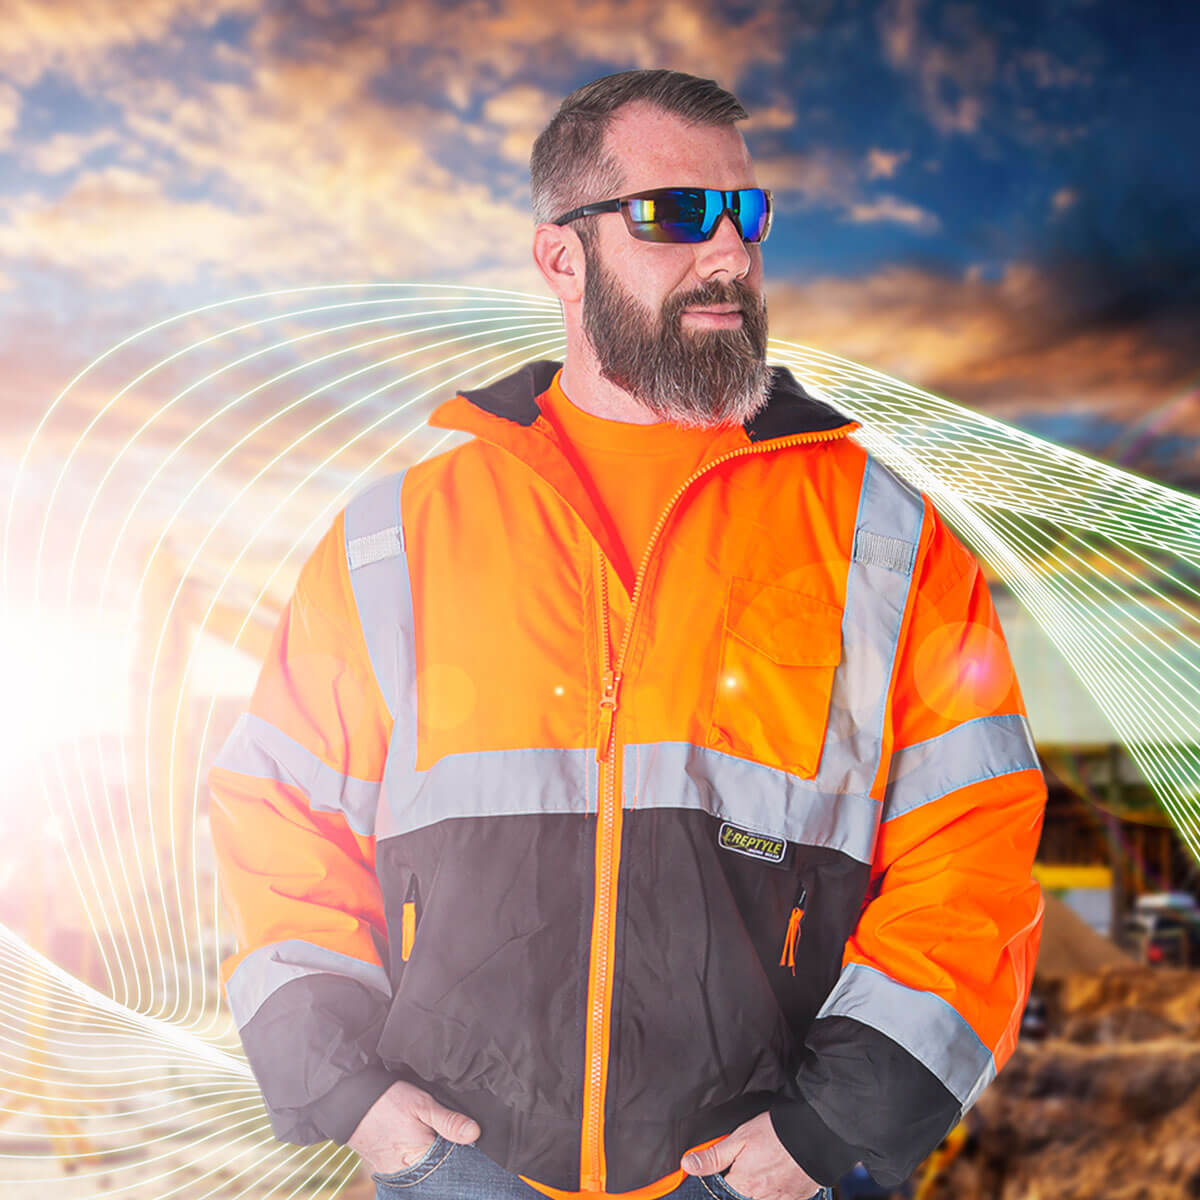 Cordova safety products safety glasses model with hi-vis jacket